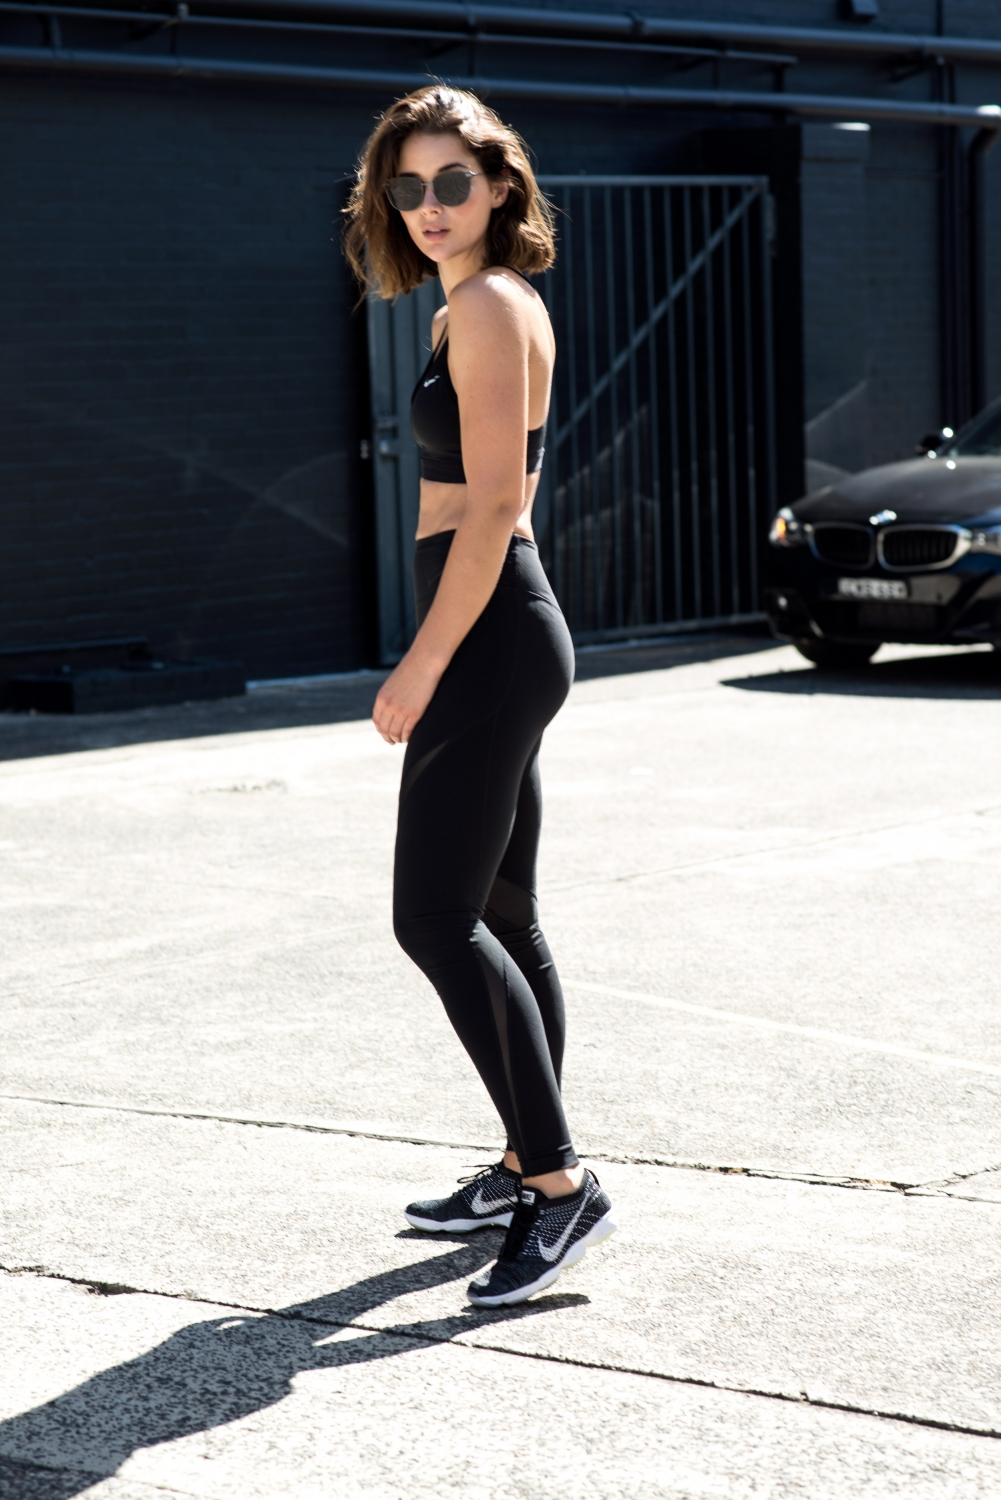 NIKE crop top and black leggings | Health| Fitness | Outfit | Style